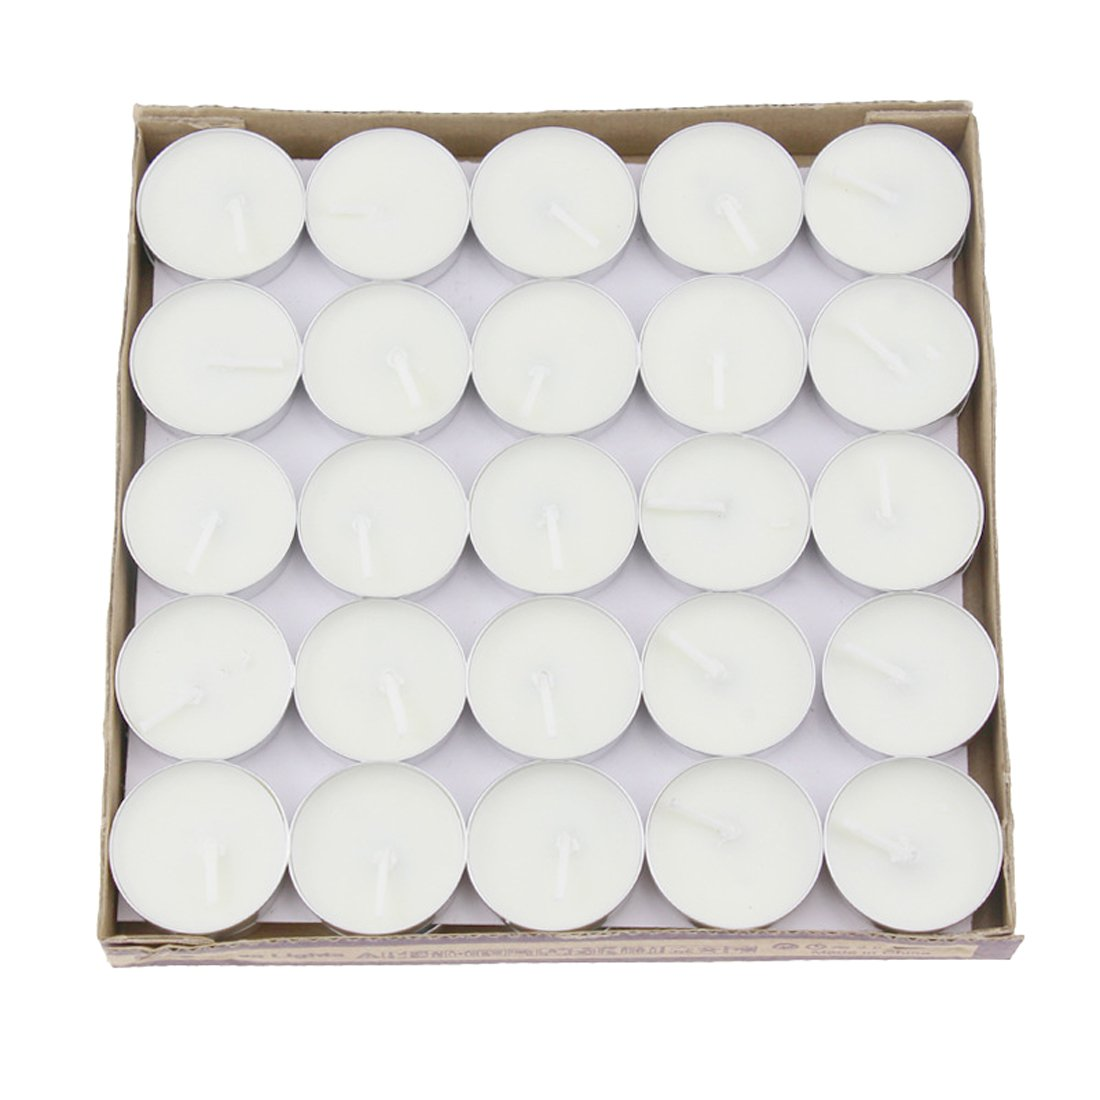 Salome Idea 50 PCS Tealight Candles, Decorative Candle for Wedding, Birthdays and all other Decorative Events (White)